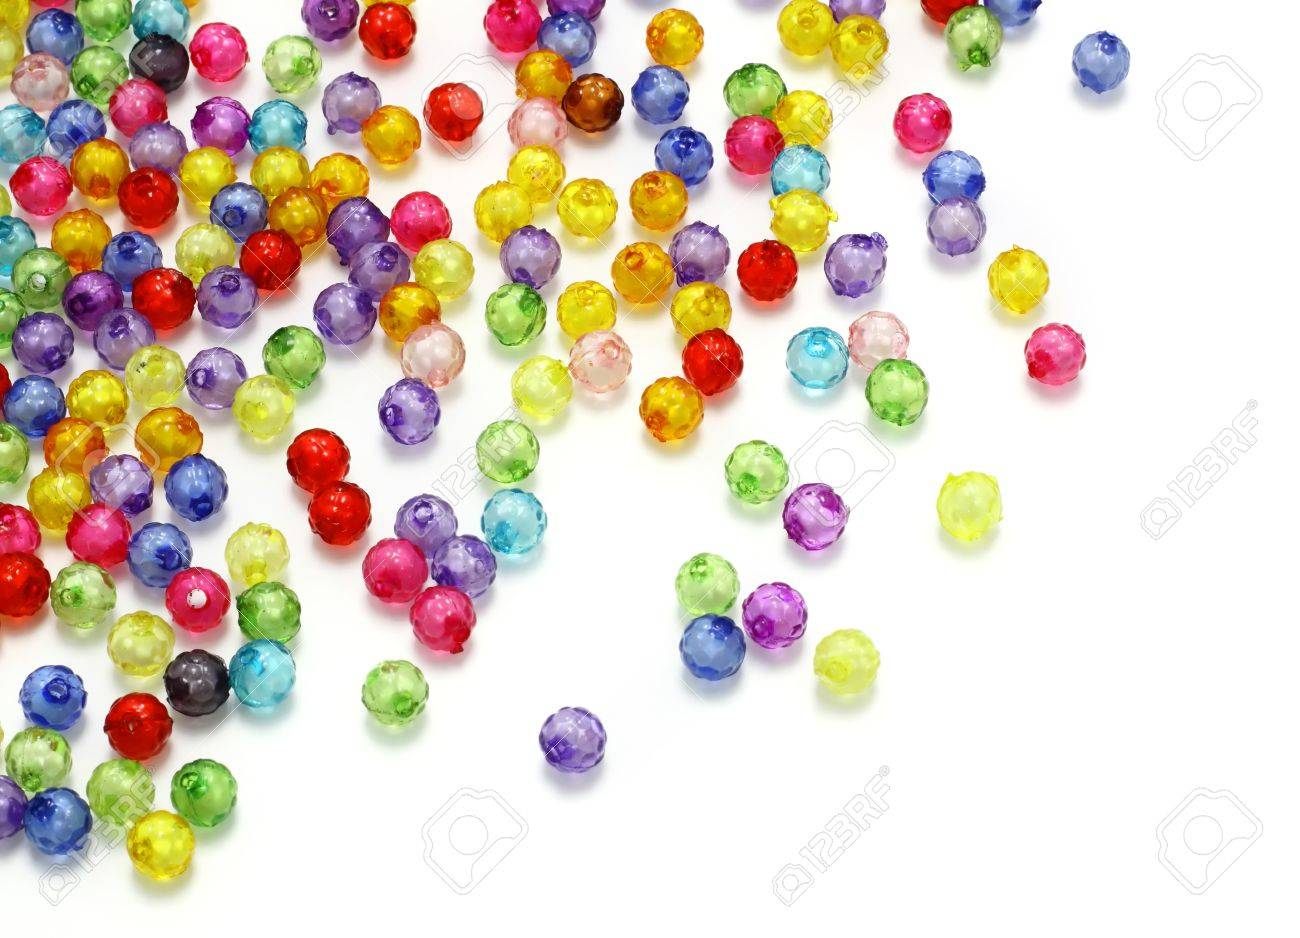 Colorful beads isolated on white background - 10295378